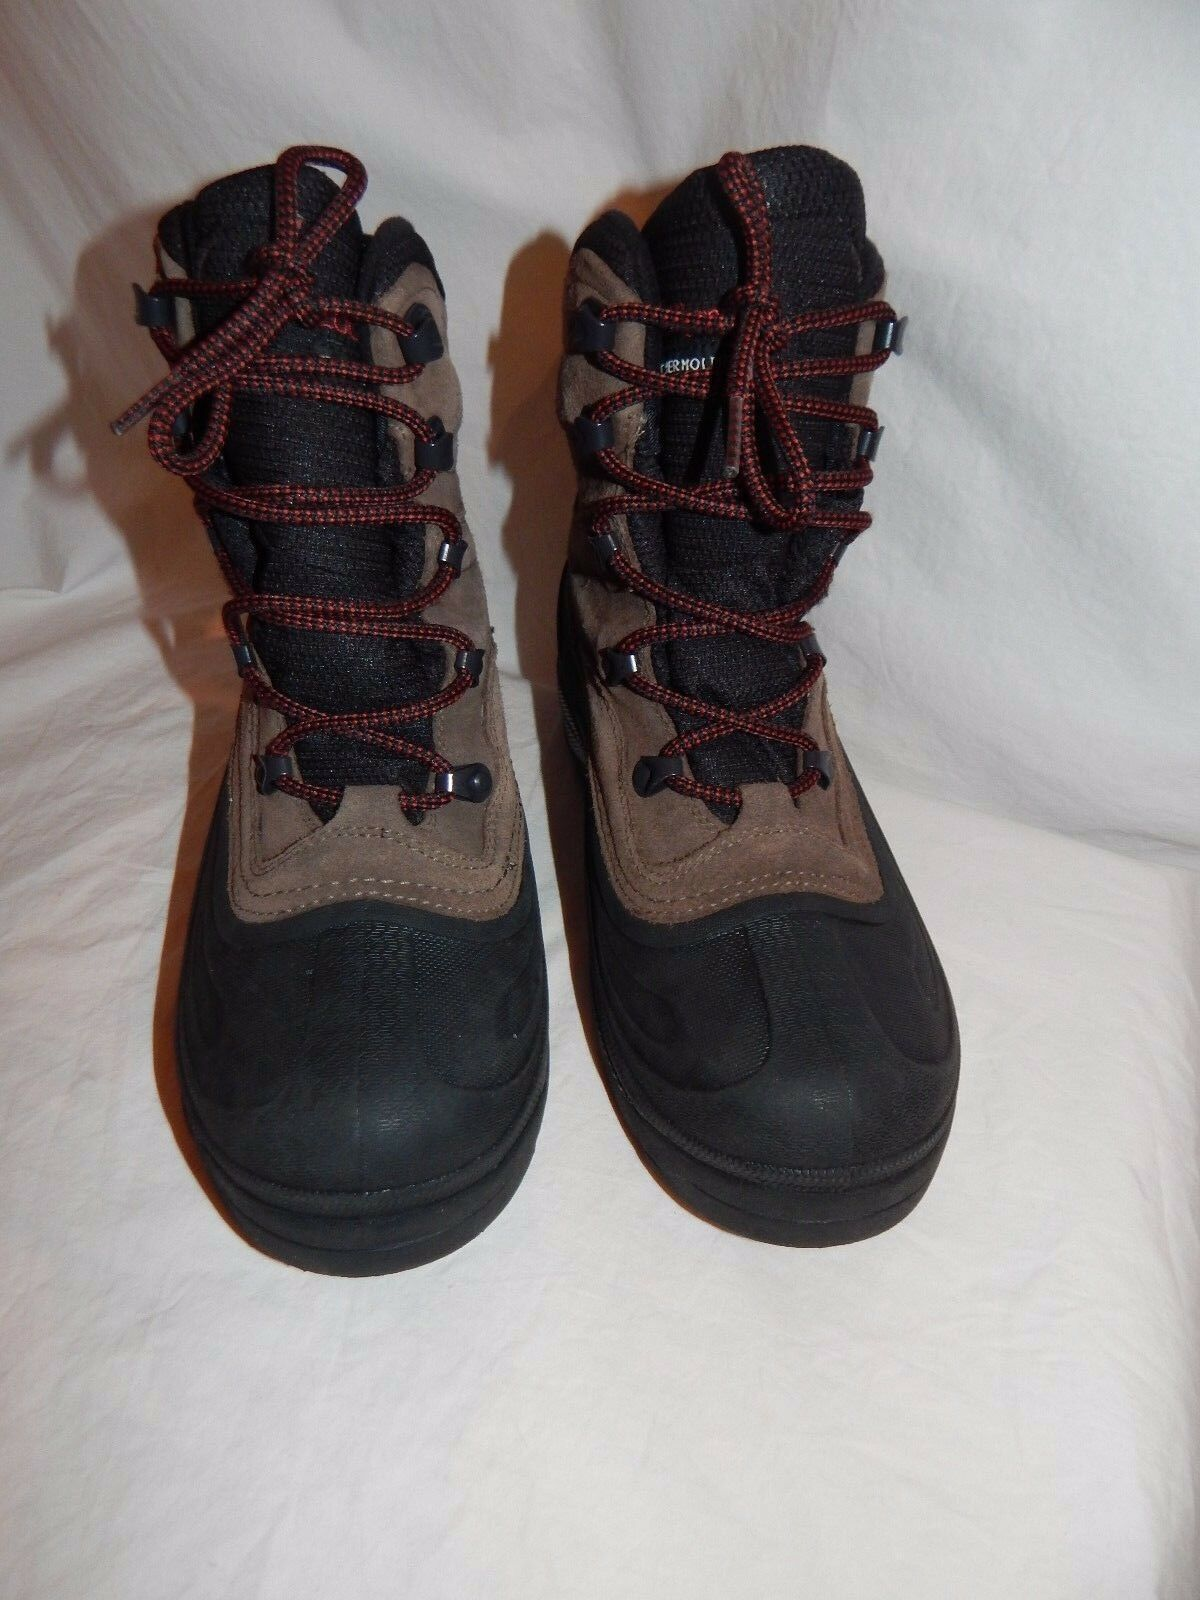 Men's Columbia 200 Grams Thermolite Water Resistant Summit Boots Size 8 1226-255